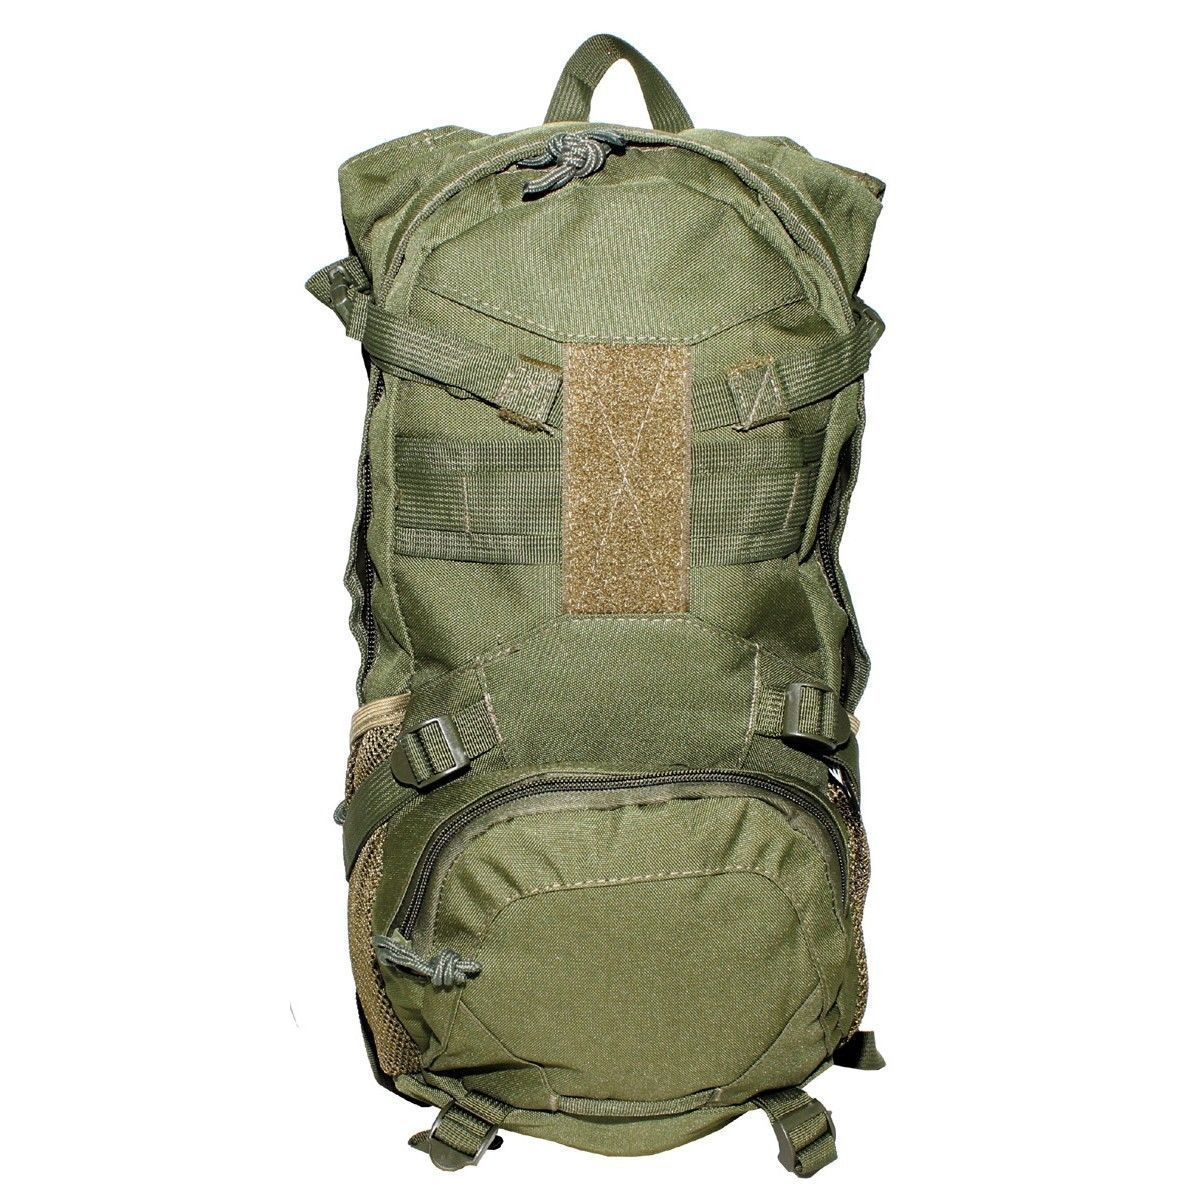 Professional Combat Scout Backpack 25L - OD Green